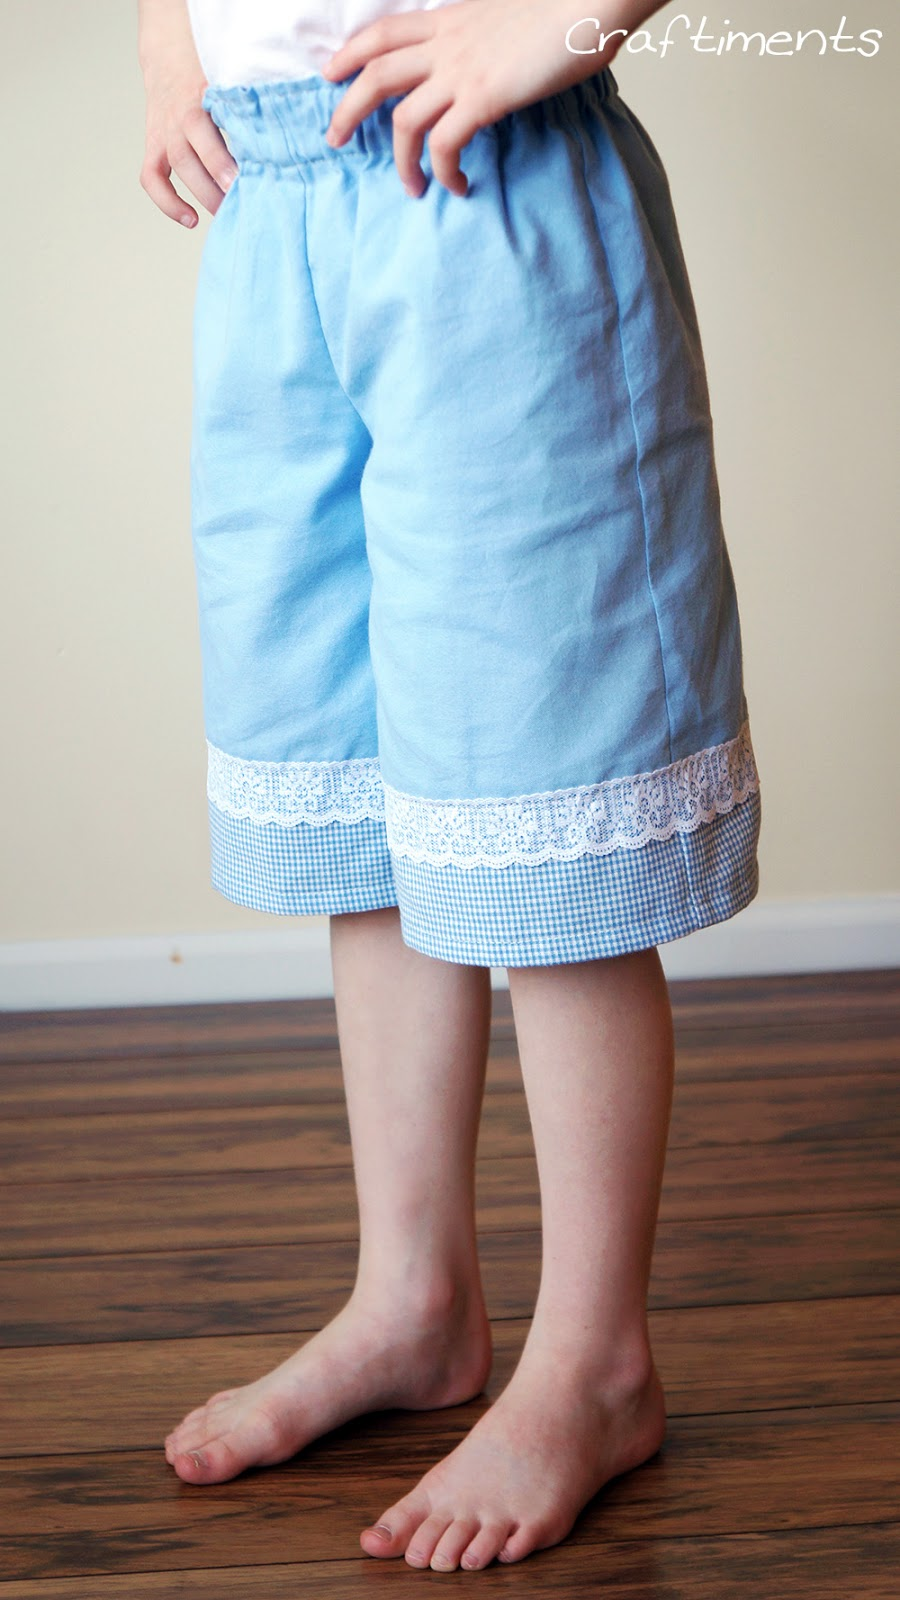 Craftiments:  Girls gauchos made with fabric repurposed from Daddy's dress shirt